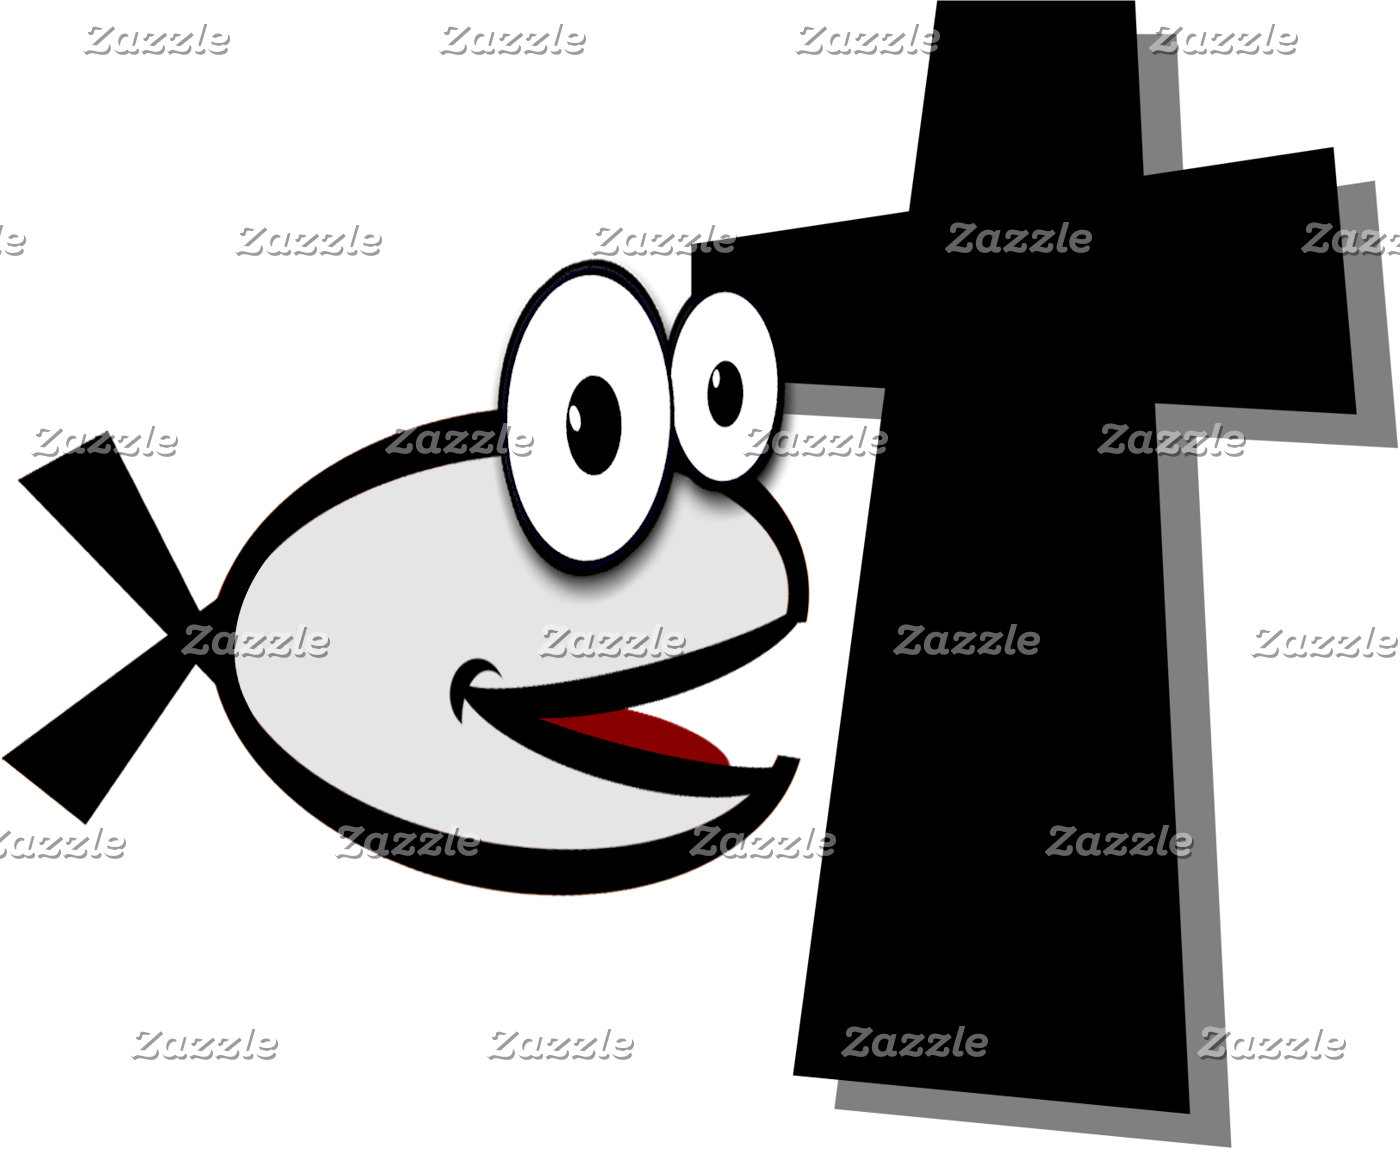 Keep Your Eyes on the Cross